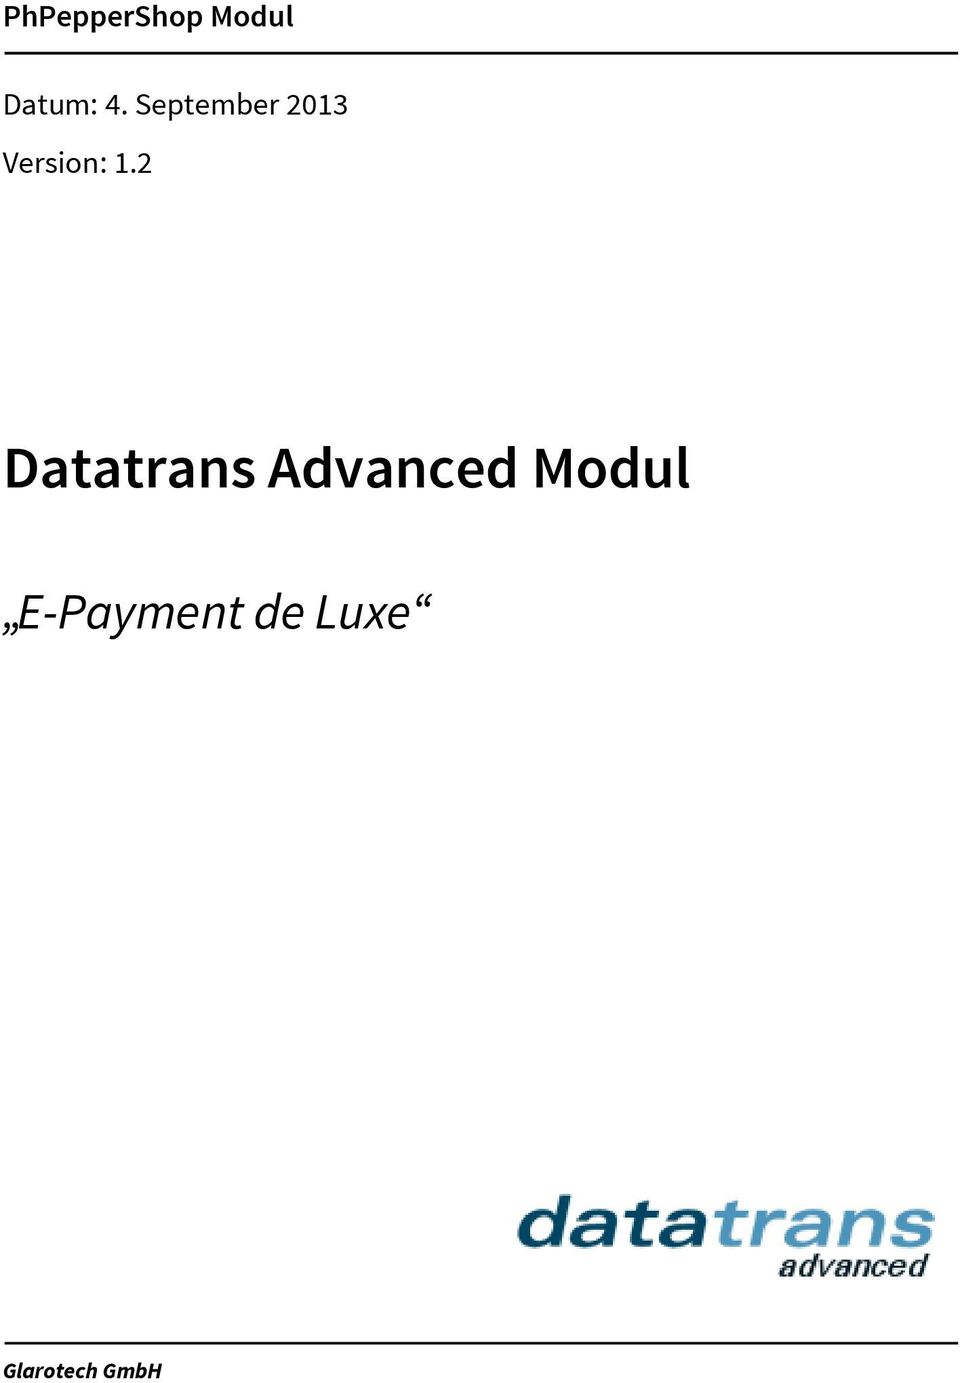 2 Datatrans Advanced Modul